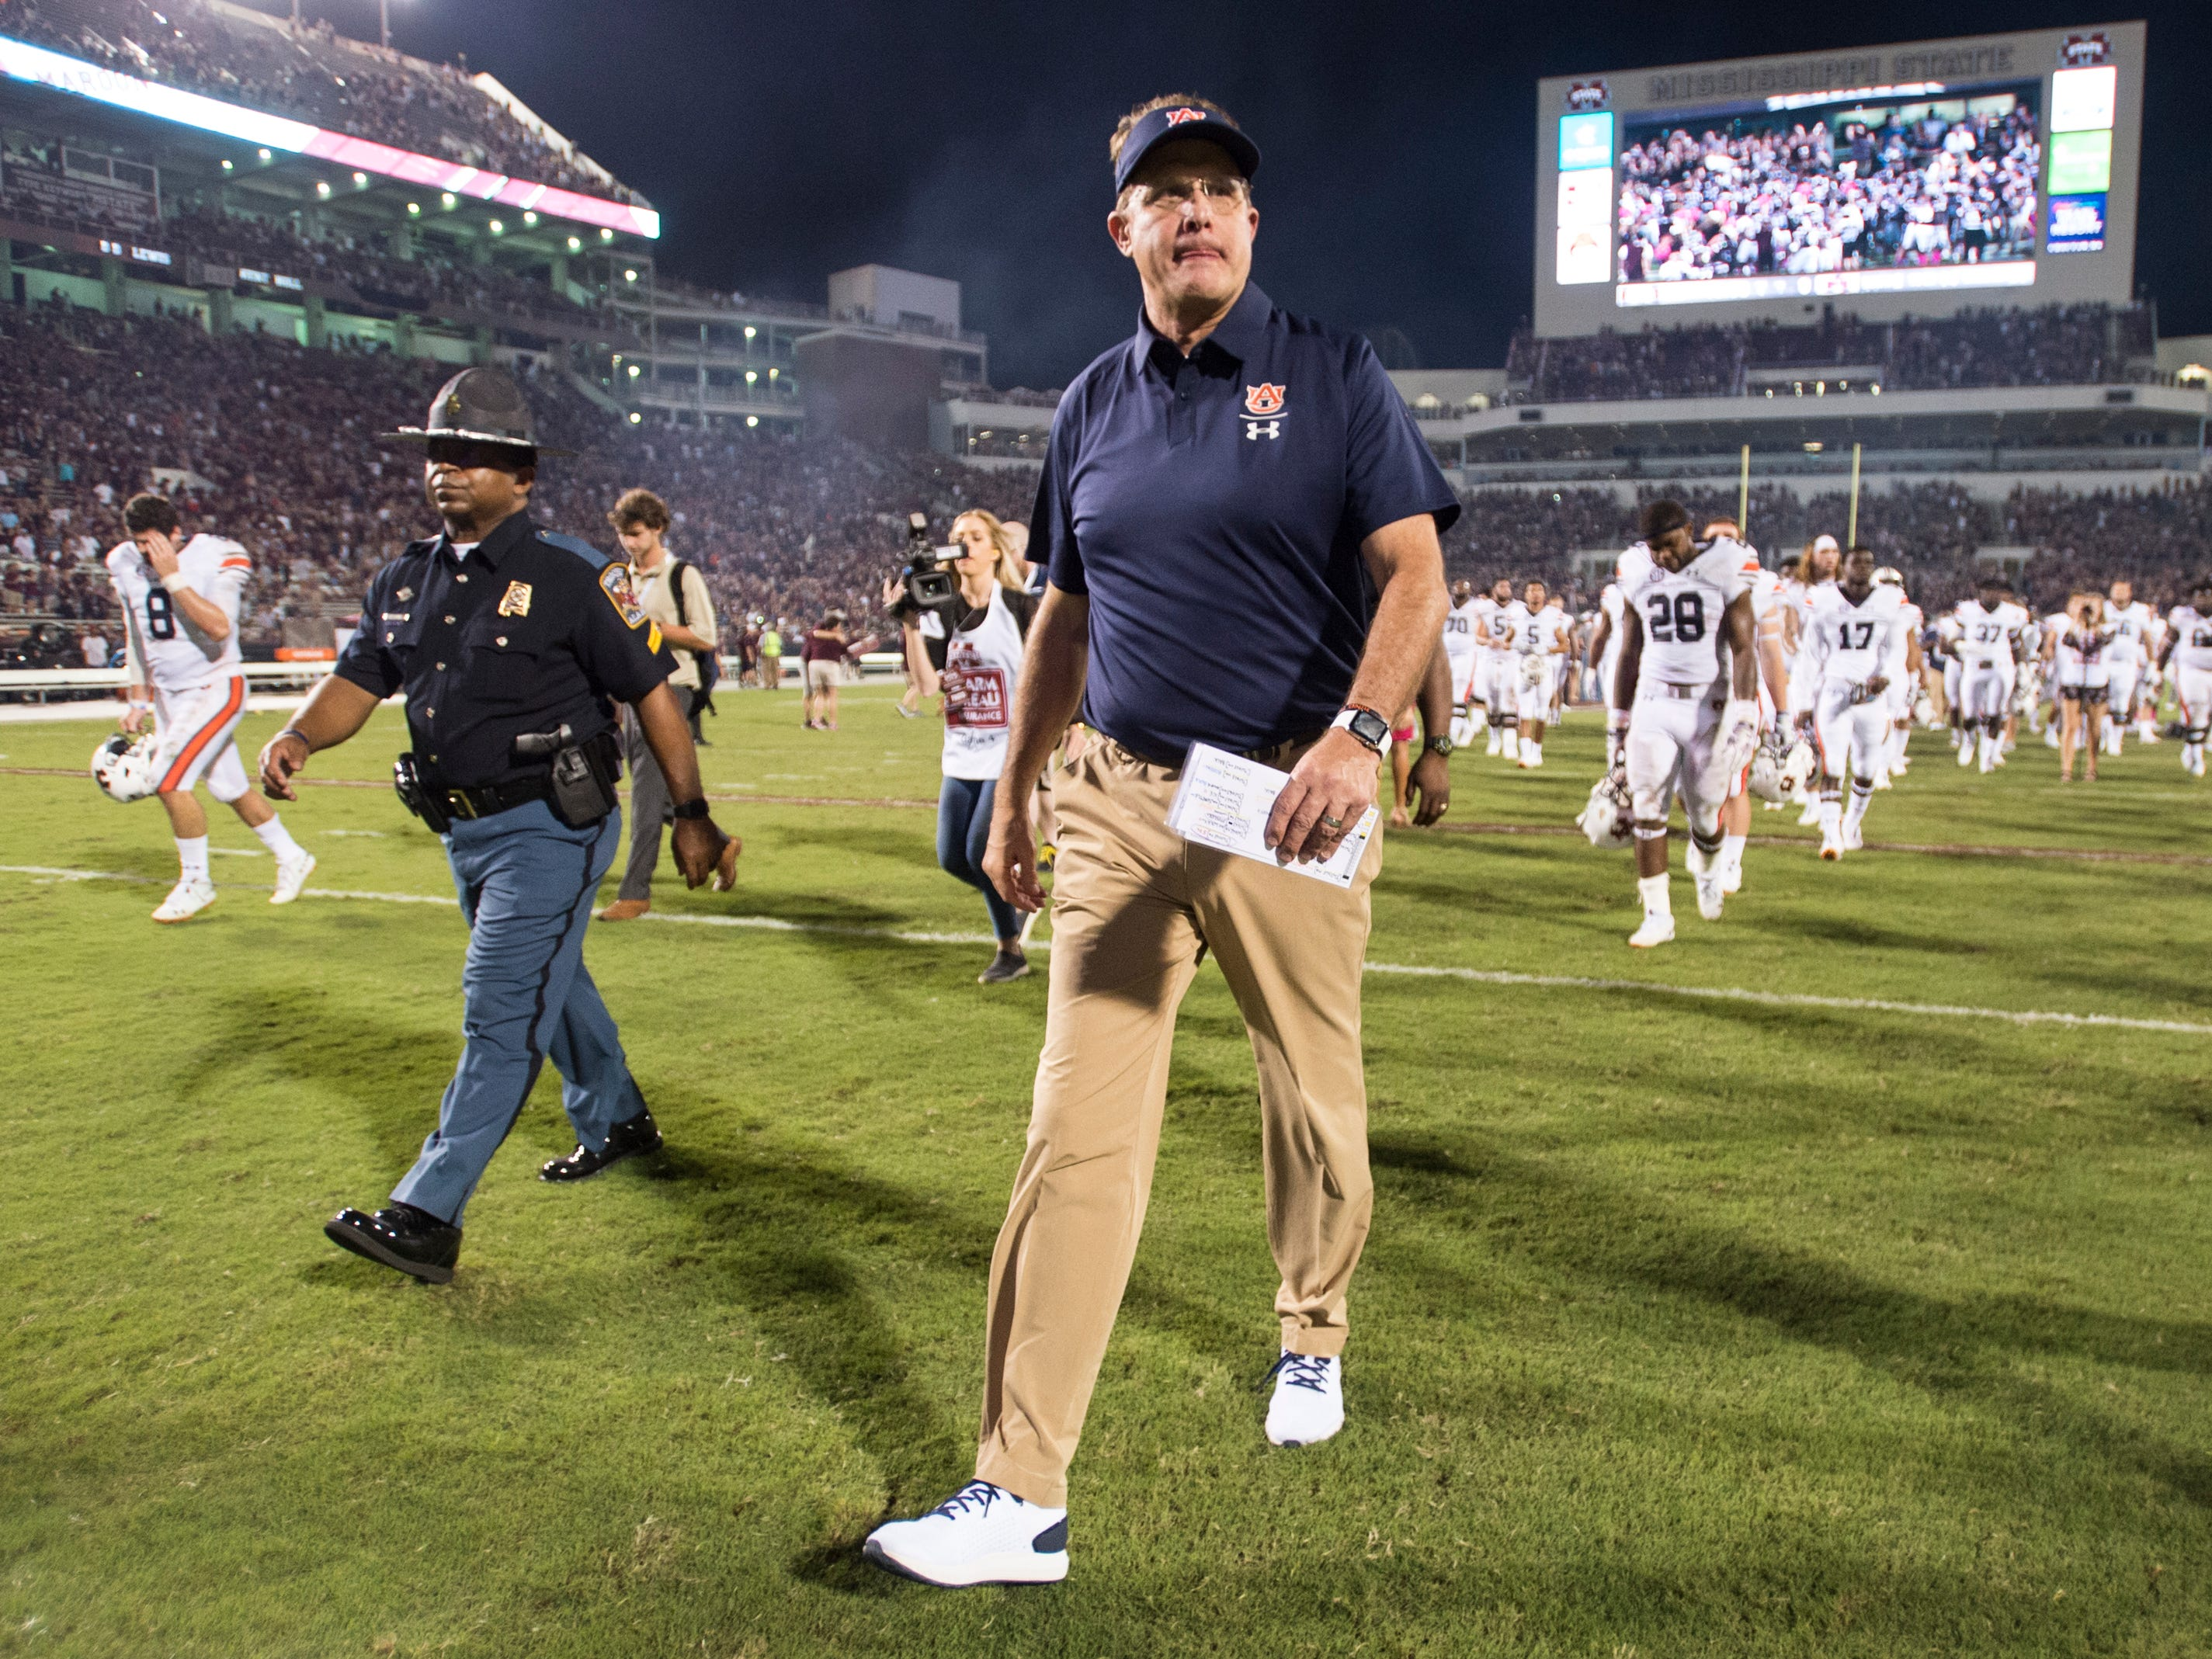 Auburn head coach Gus Malzahn walks off the field after the game at Davis Wade Stadium in Starkville, Miss., on Saturday, Oct. 6, 2018. Mississippi State defeated Auburn 23-9.